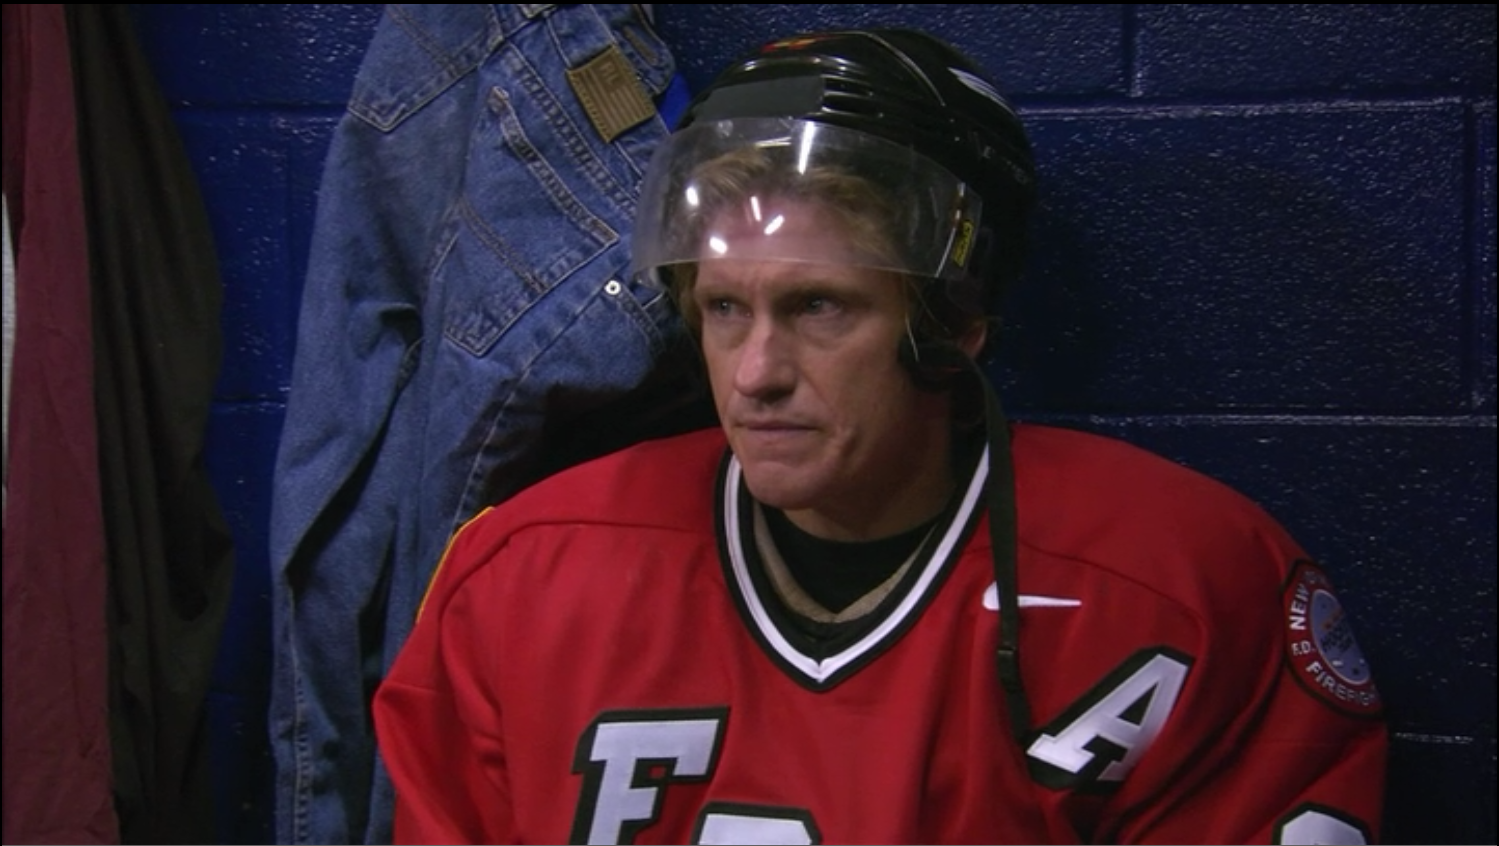 Dennis Leary seems to feel at home in a hockey jersey. To go along with his numerous FDNY jerseys, the star also casually sported a Bobby Orr sweater. Photo courtesy of Sony Pictures Television